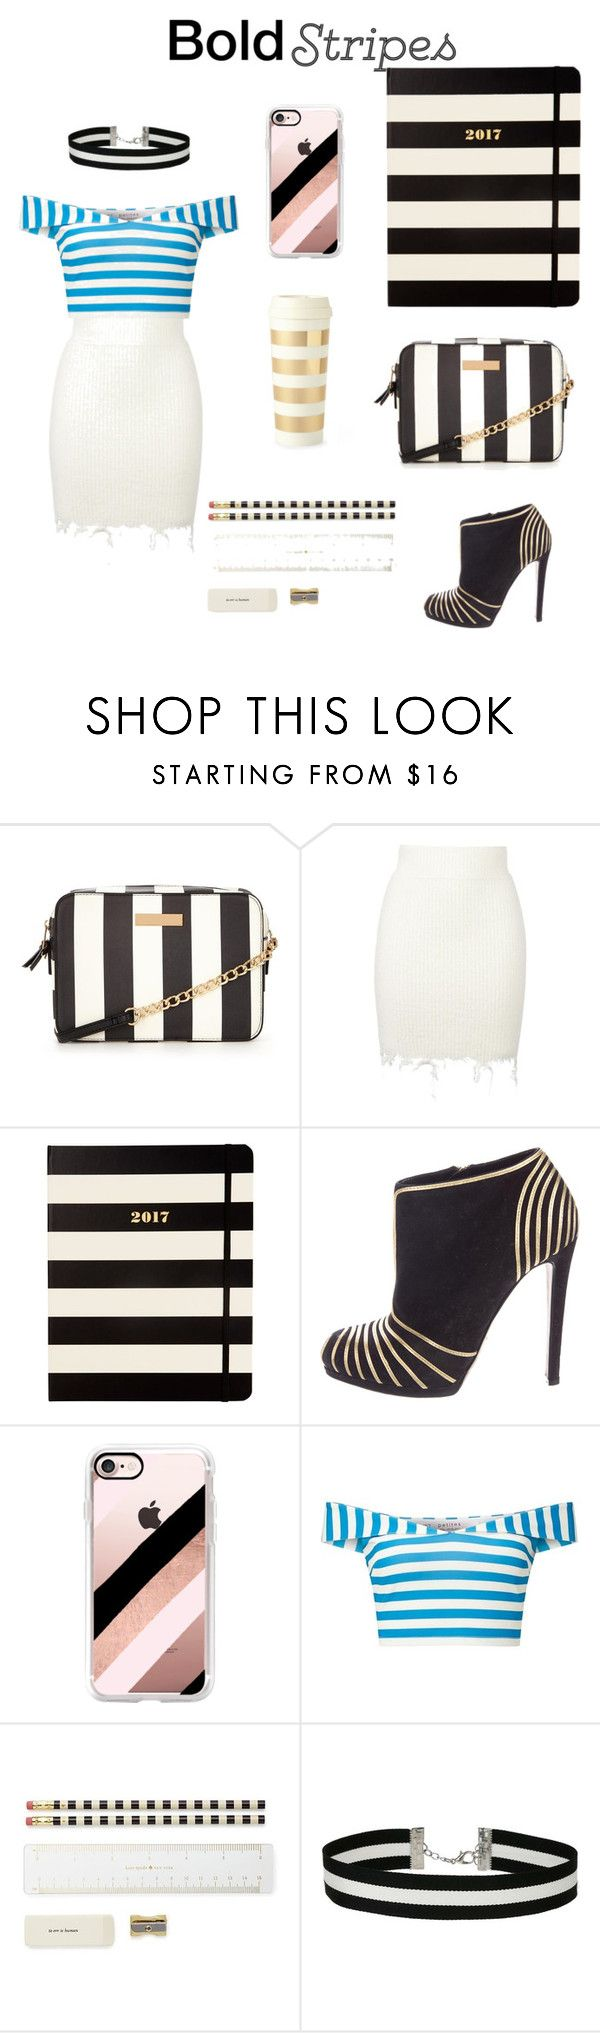 """Bold stripes makes confident"" by lydiasoong2210 ❤ liked on Polyvore featuring adidas Originals, Kate Spade, Sergio Rossi, Casetify and Miss Selfridge"